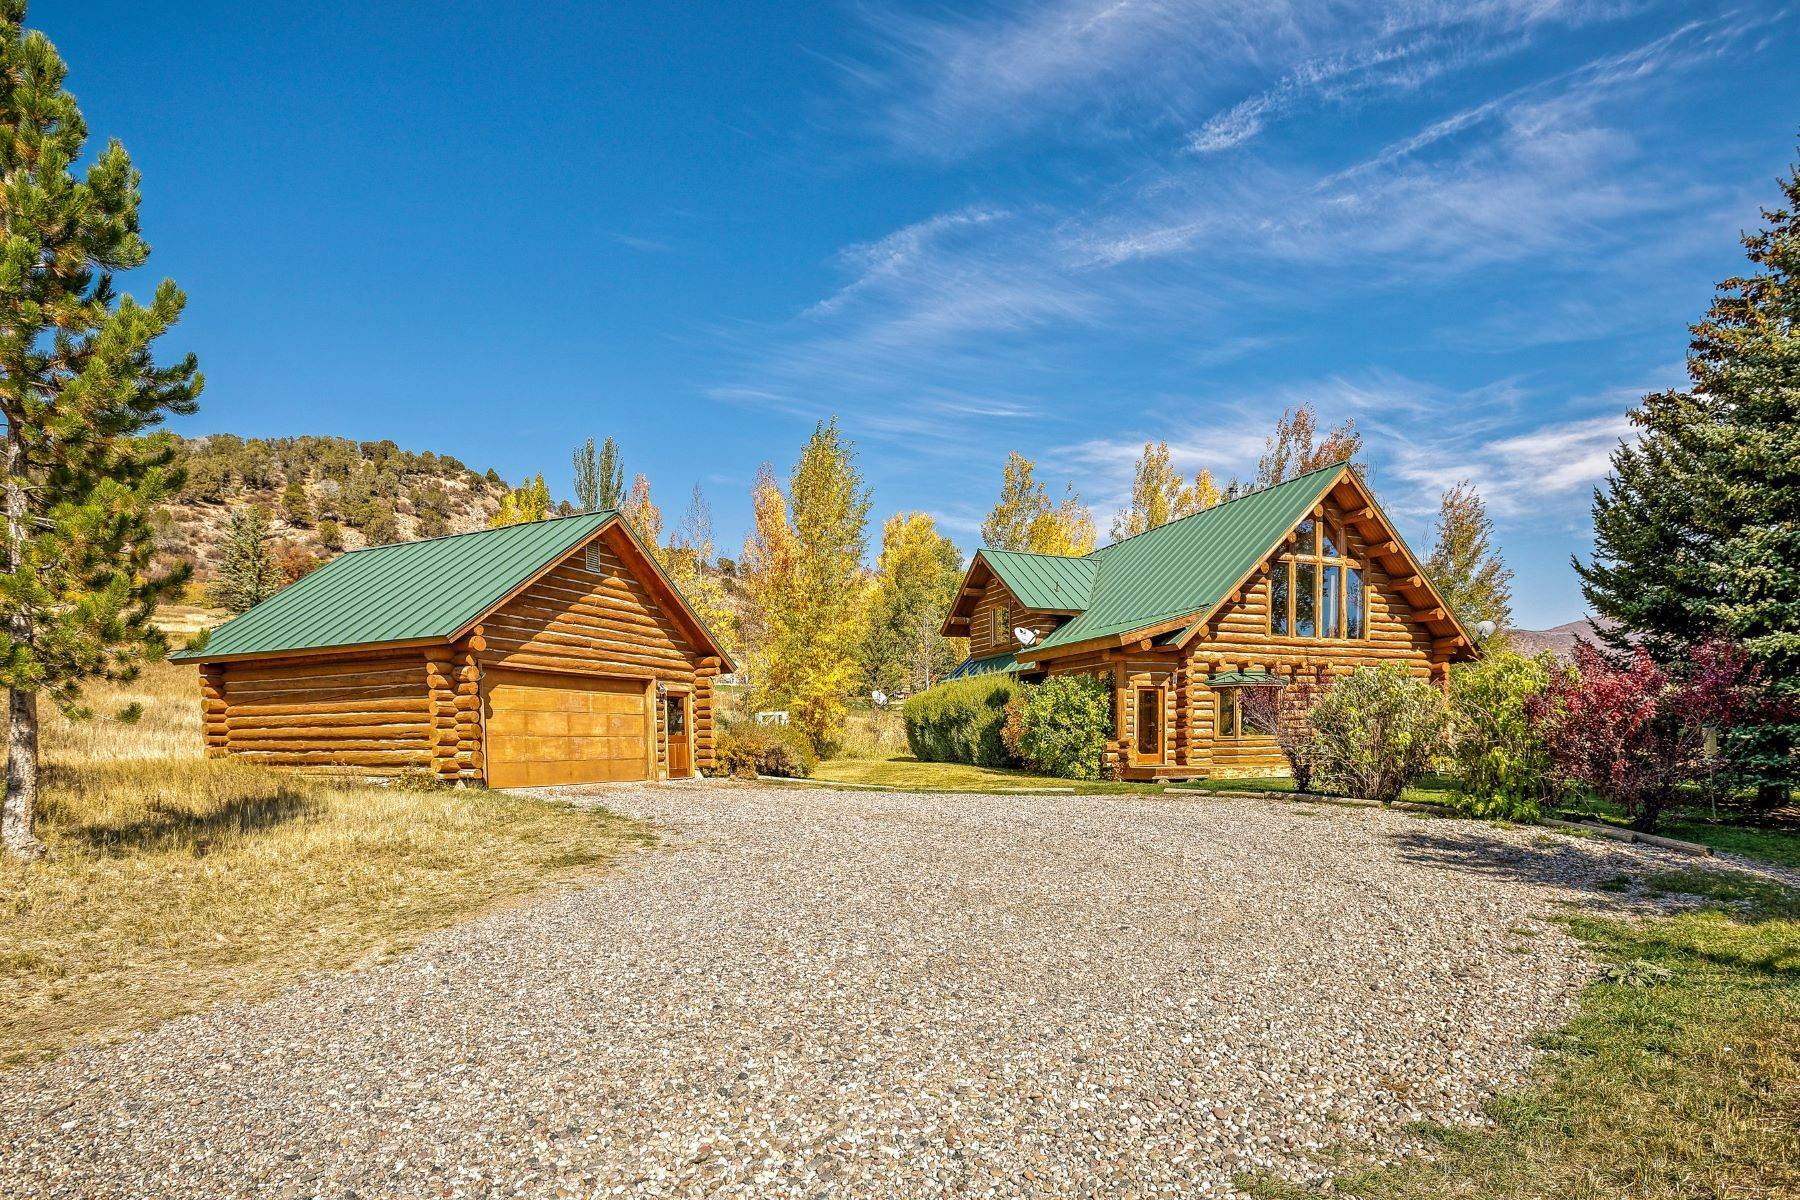 Single Family Homes for Sale at Charming Little Elk Creek Cabin 50 Alexander Avenue Snowmass, Colorado 81654 United States